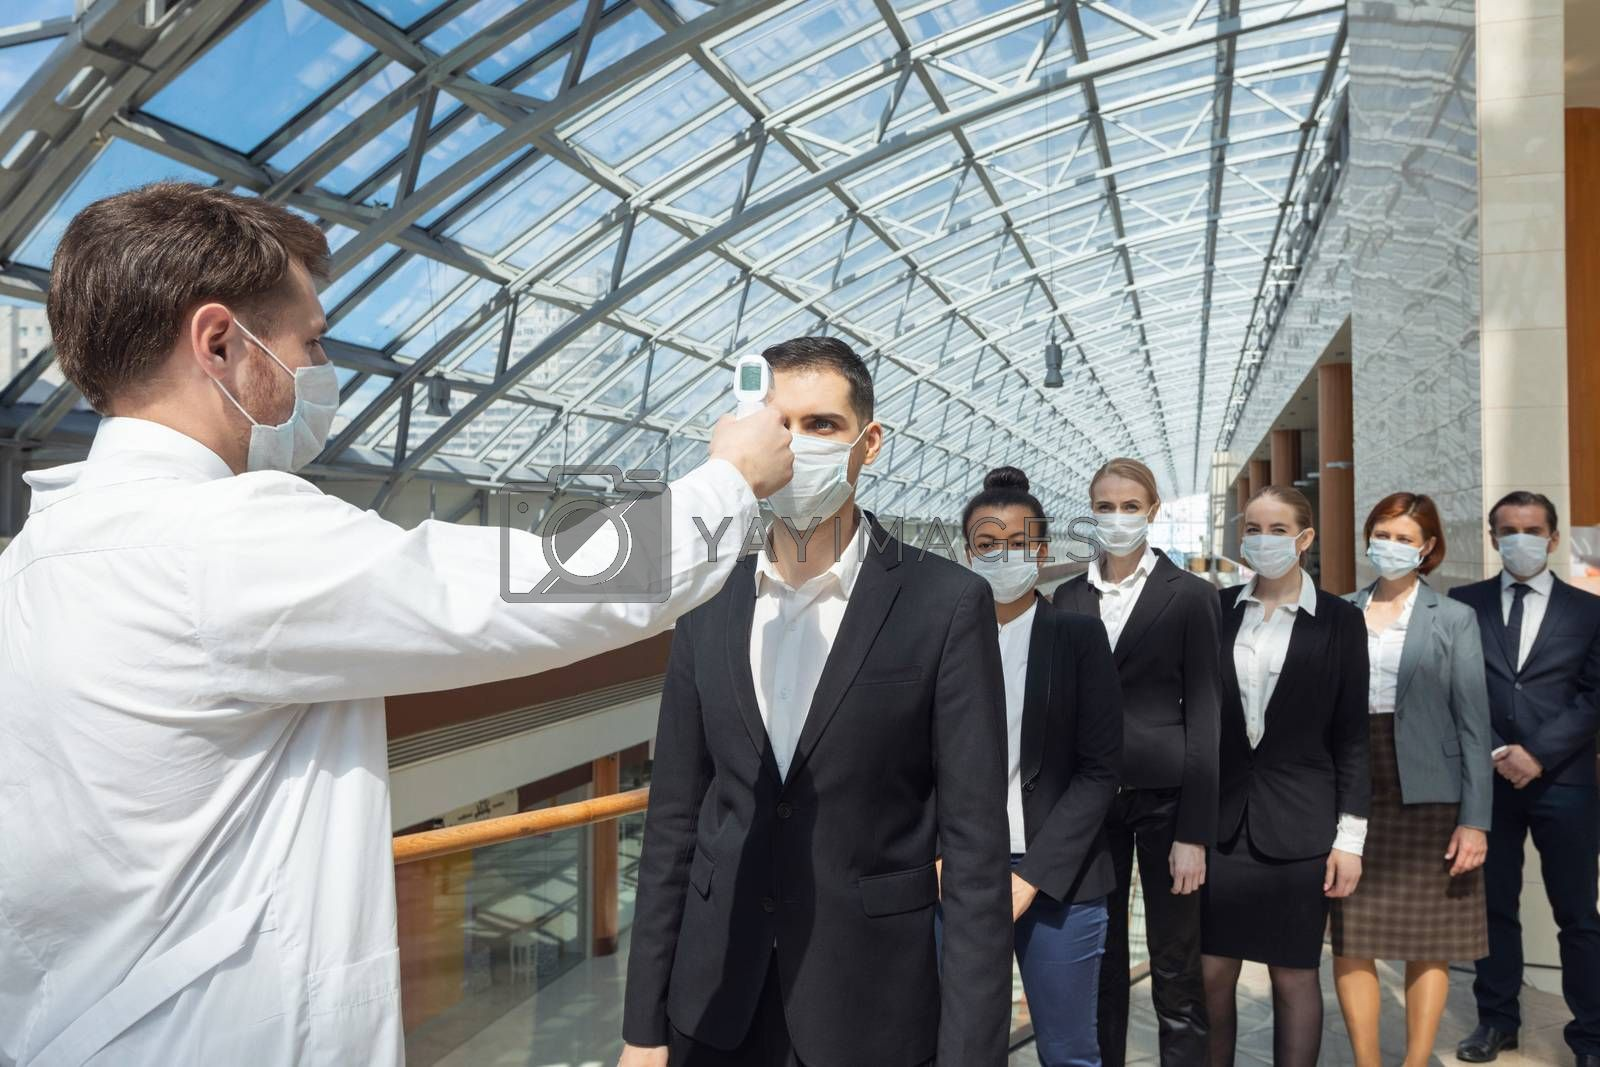 Doctor check body temperature of business team by ALotOfPeople